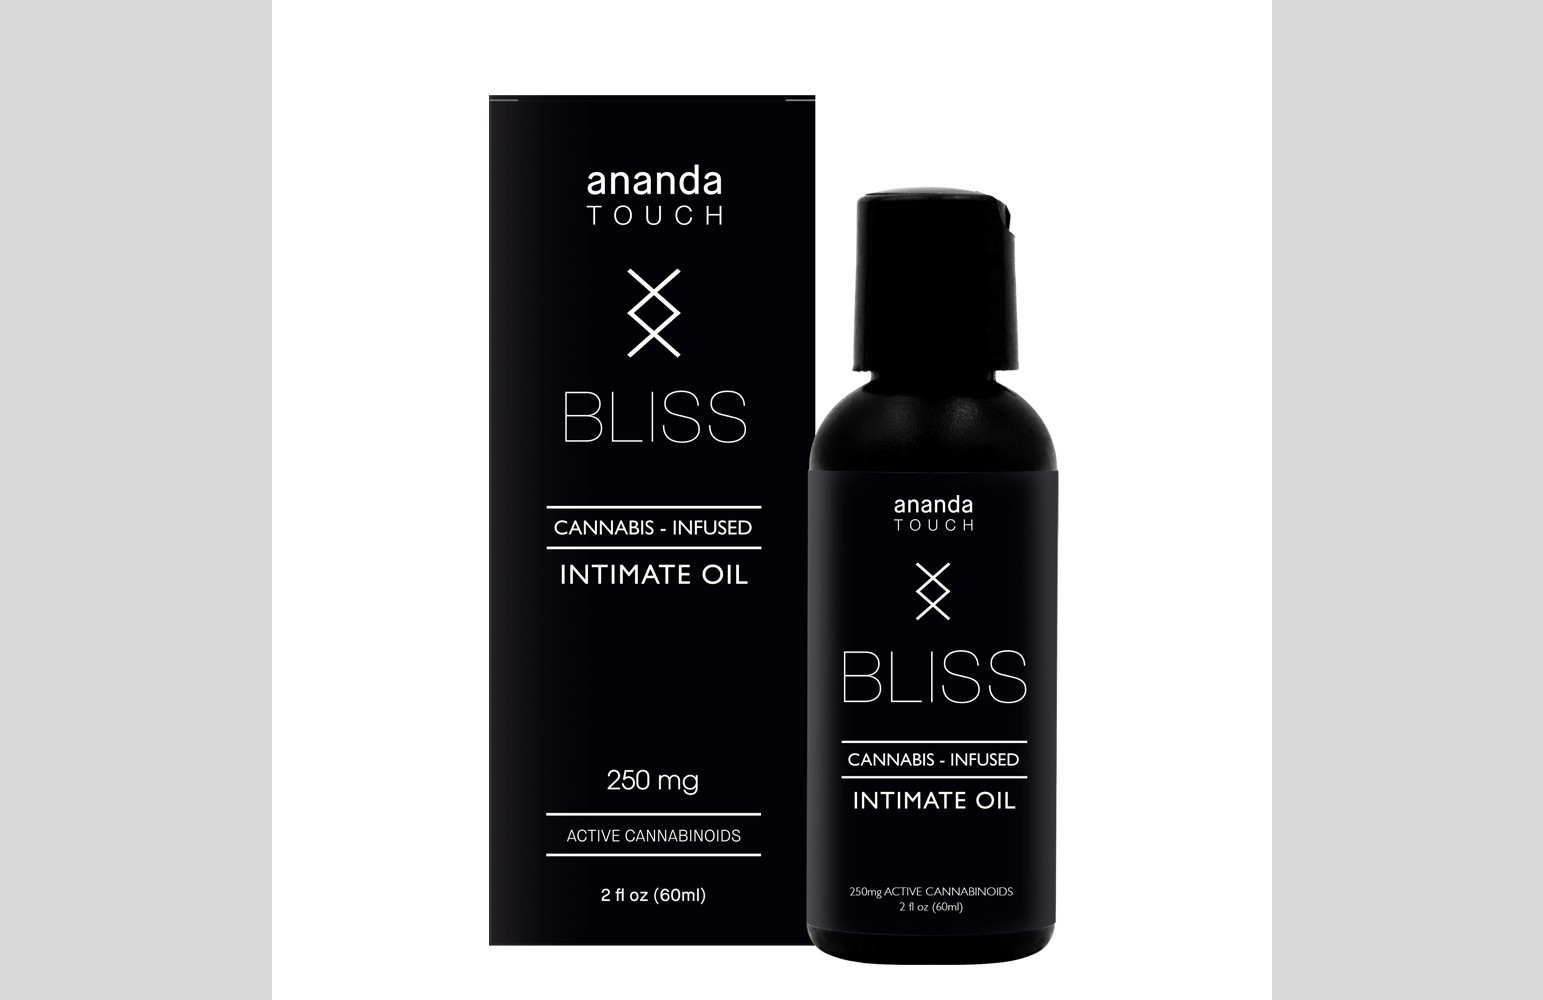 Ananda_Touch_Bliss_Initimate_Oil